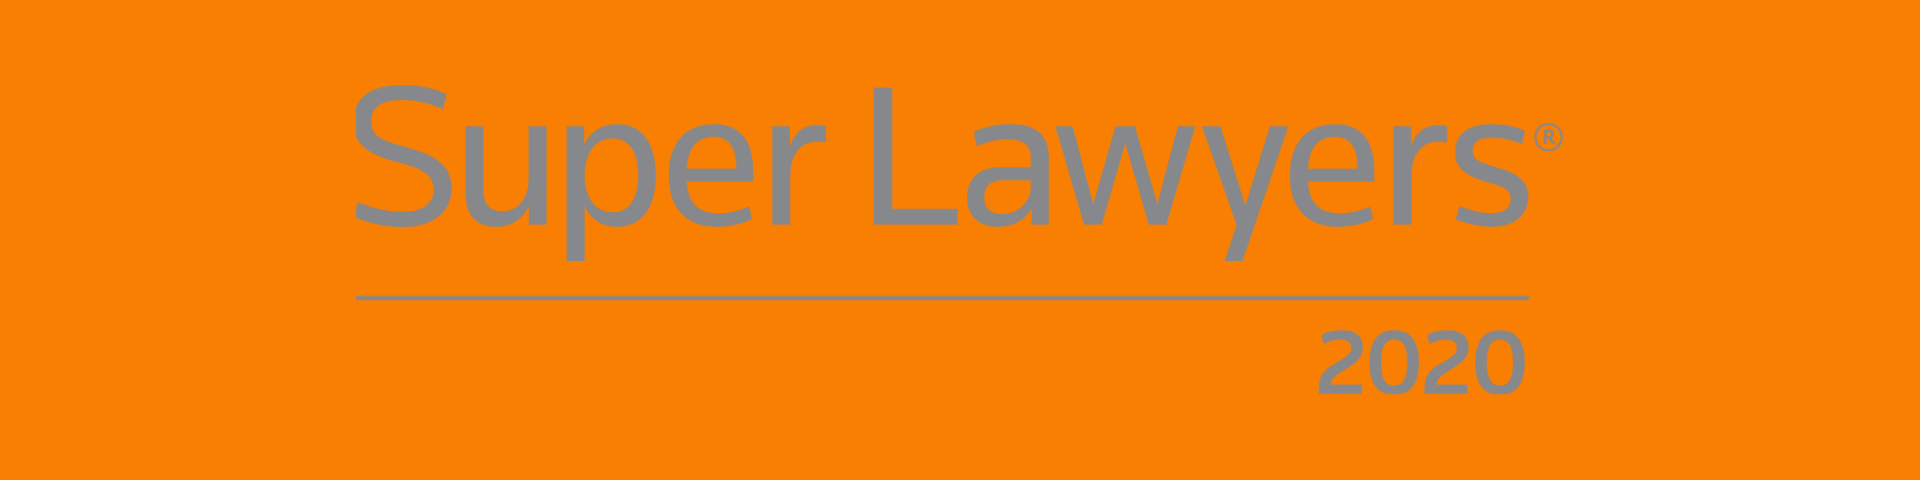 super-lawyers-website.png